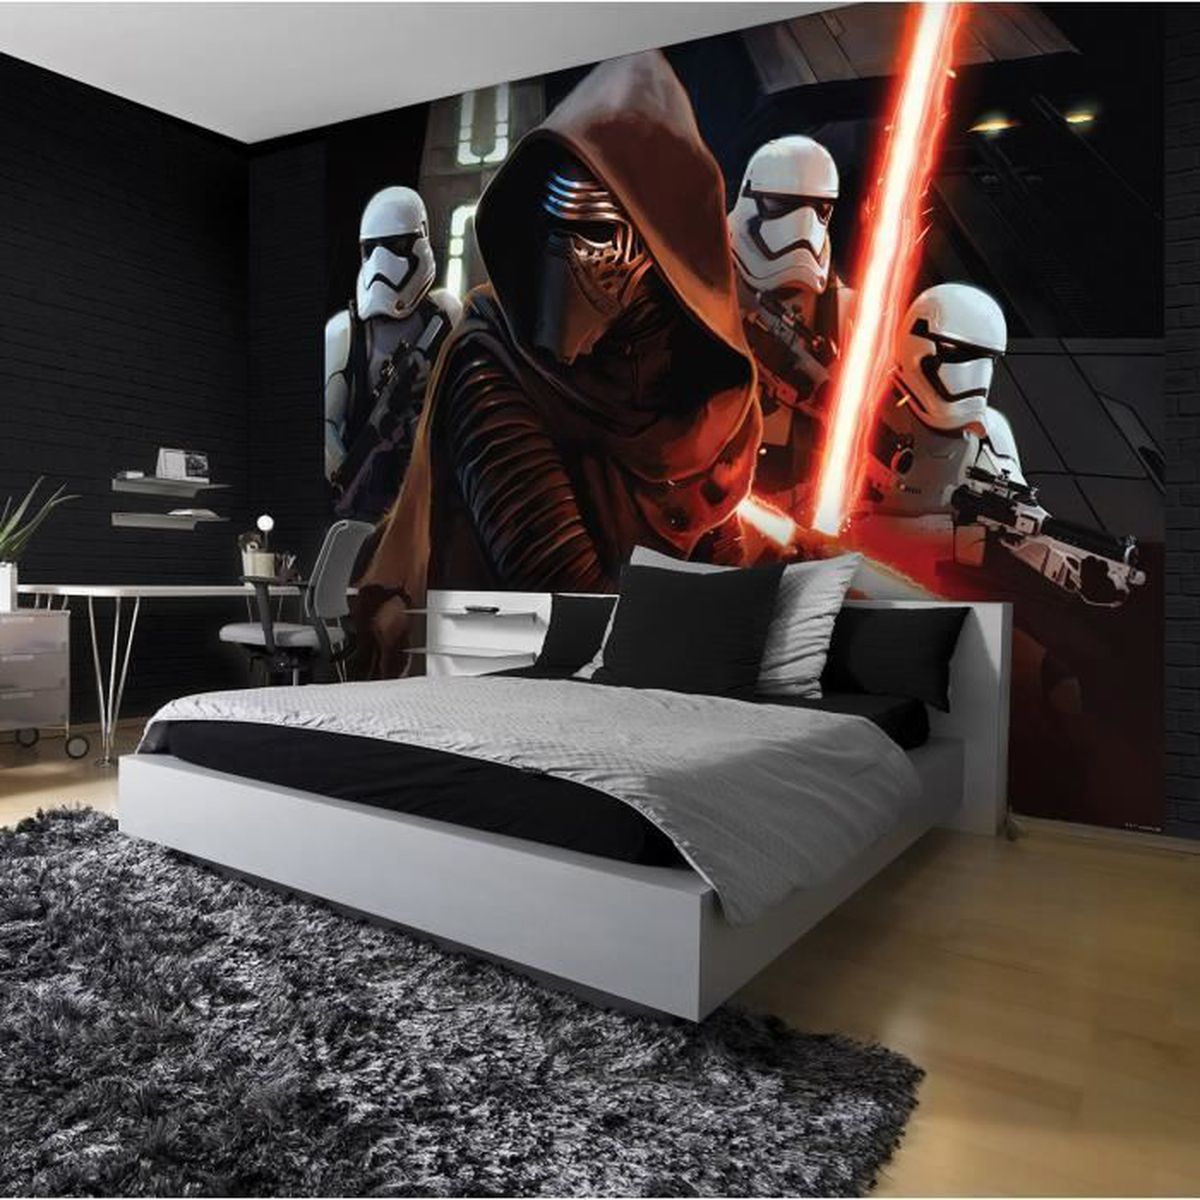 papier peint star wars 104 x 152 5 cm fresque murale le r veil de la force achat vente. Black Bedroom Furniture Sets. Home Design Ideas